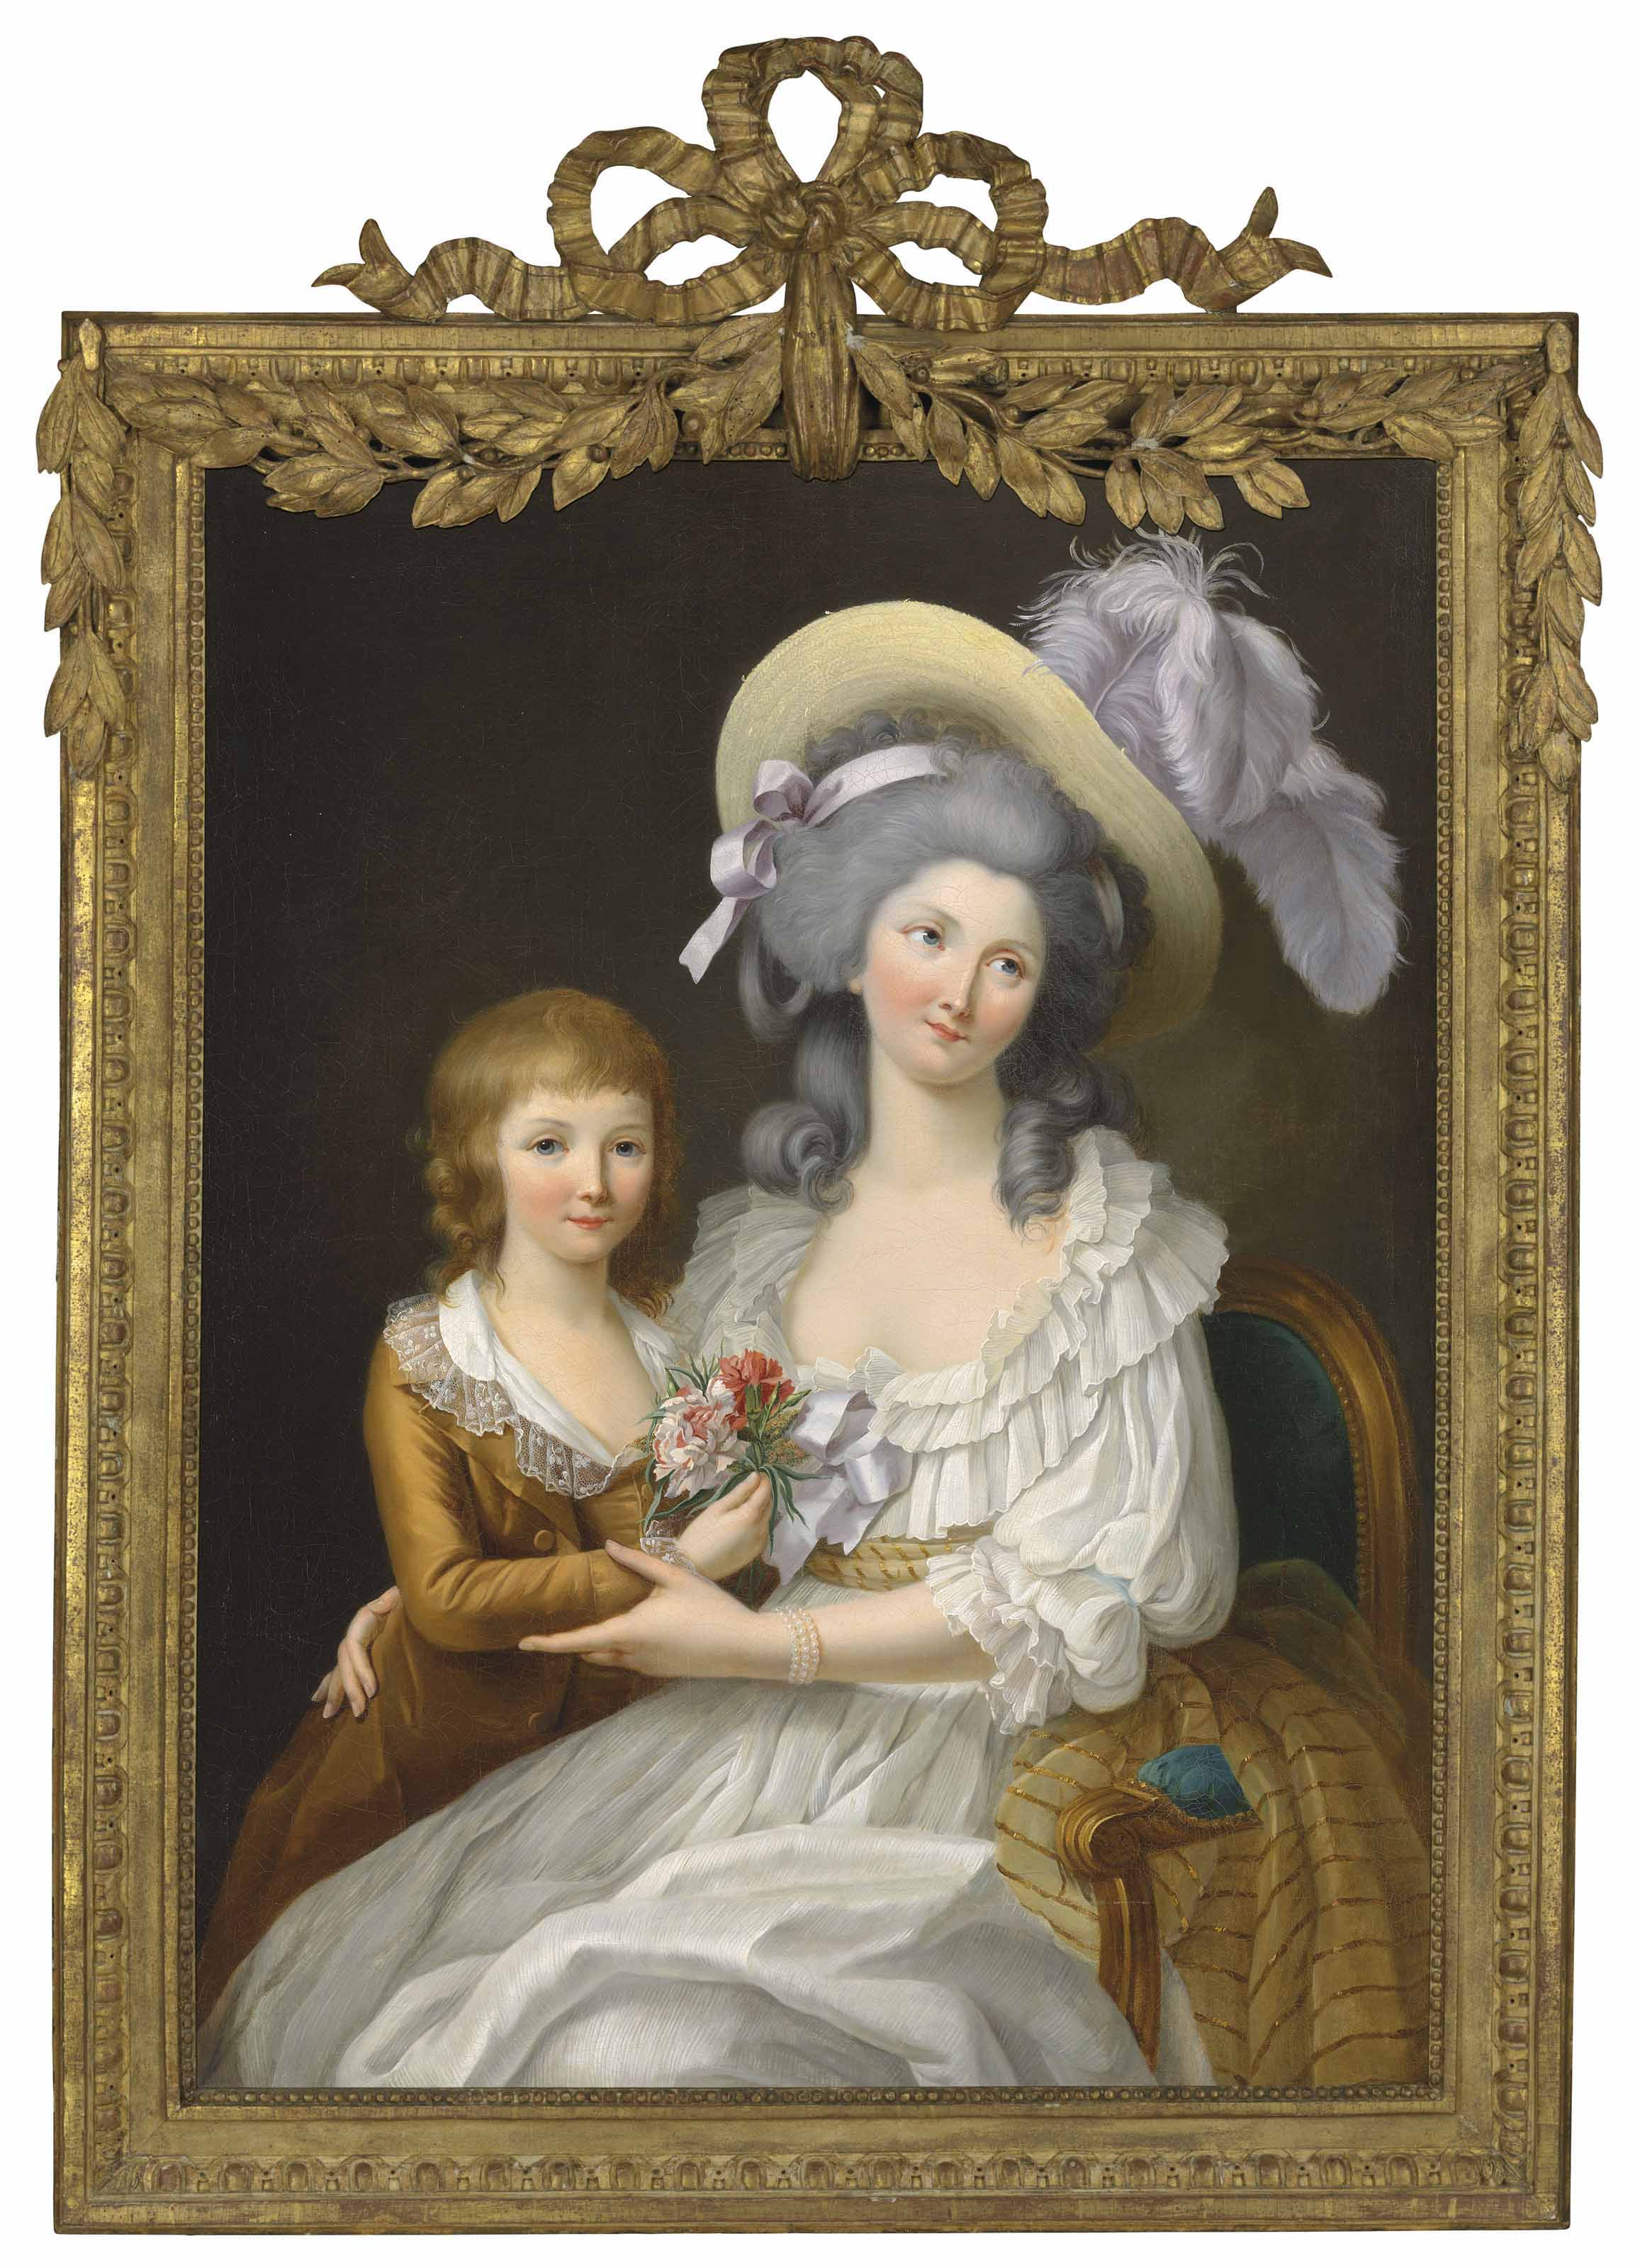 Double portrait of Marie-Thérèse of France (1778-1815), Duchesse d'Angoulême, with her brother Louis XVII (1785-1795), three-quarter length, seated in an interior